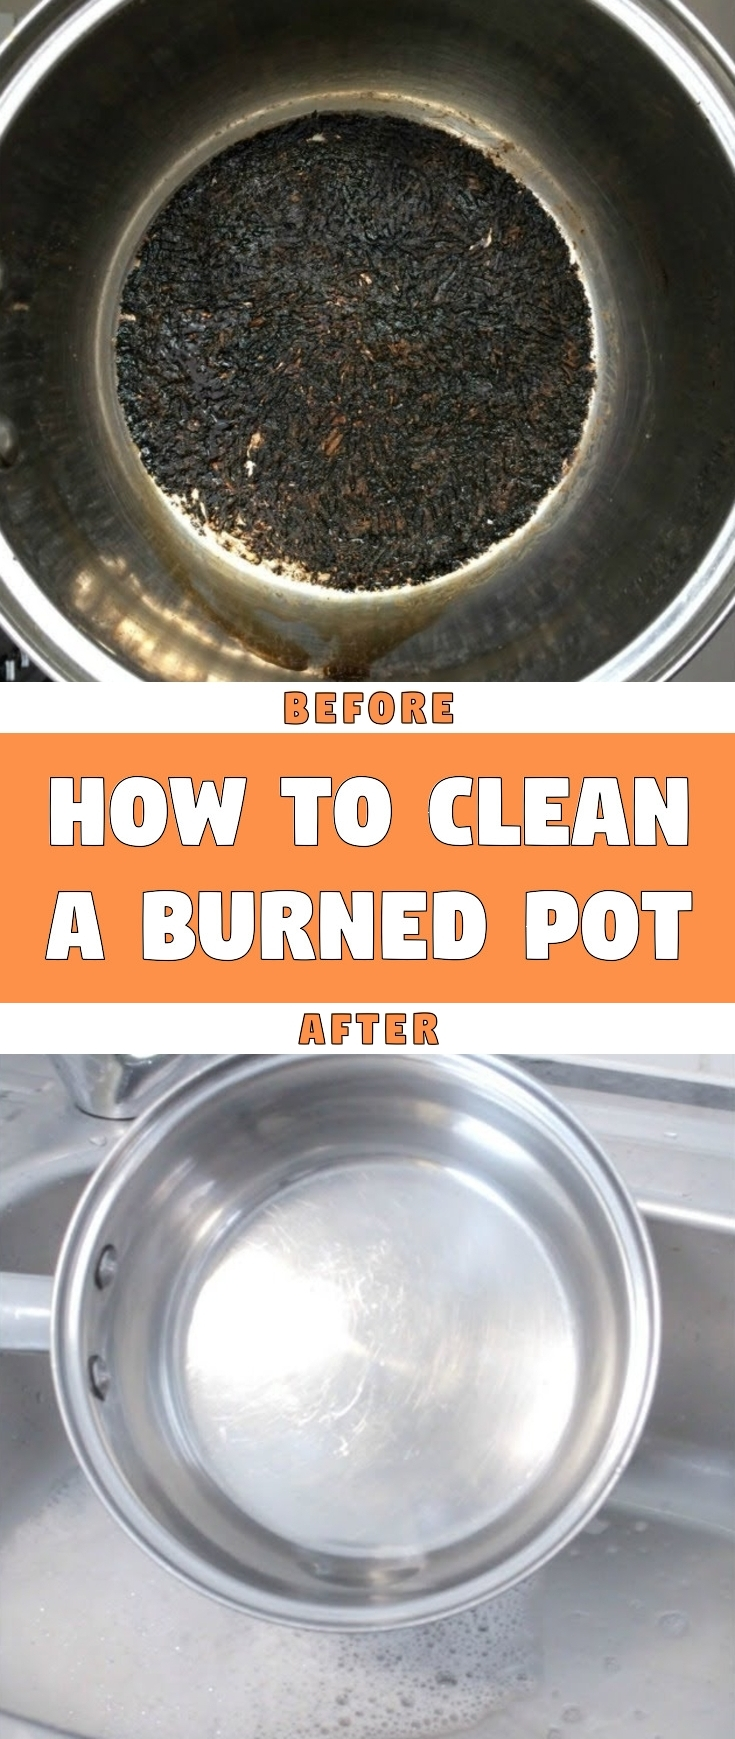 How to clean a burned pot